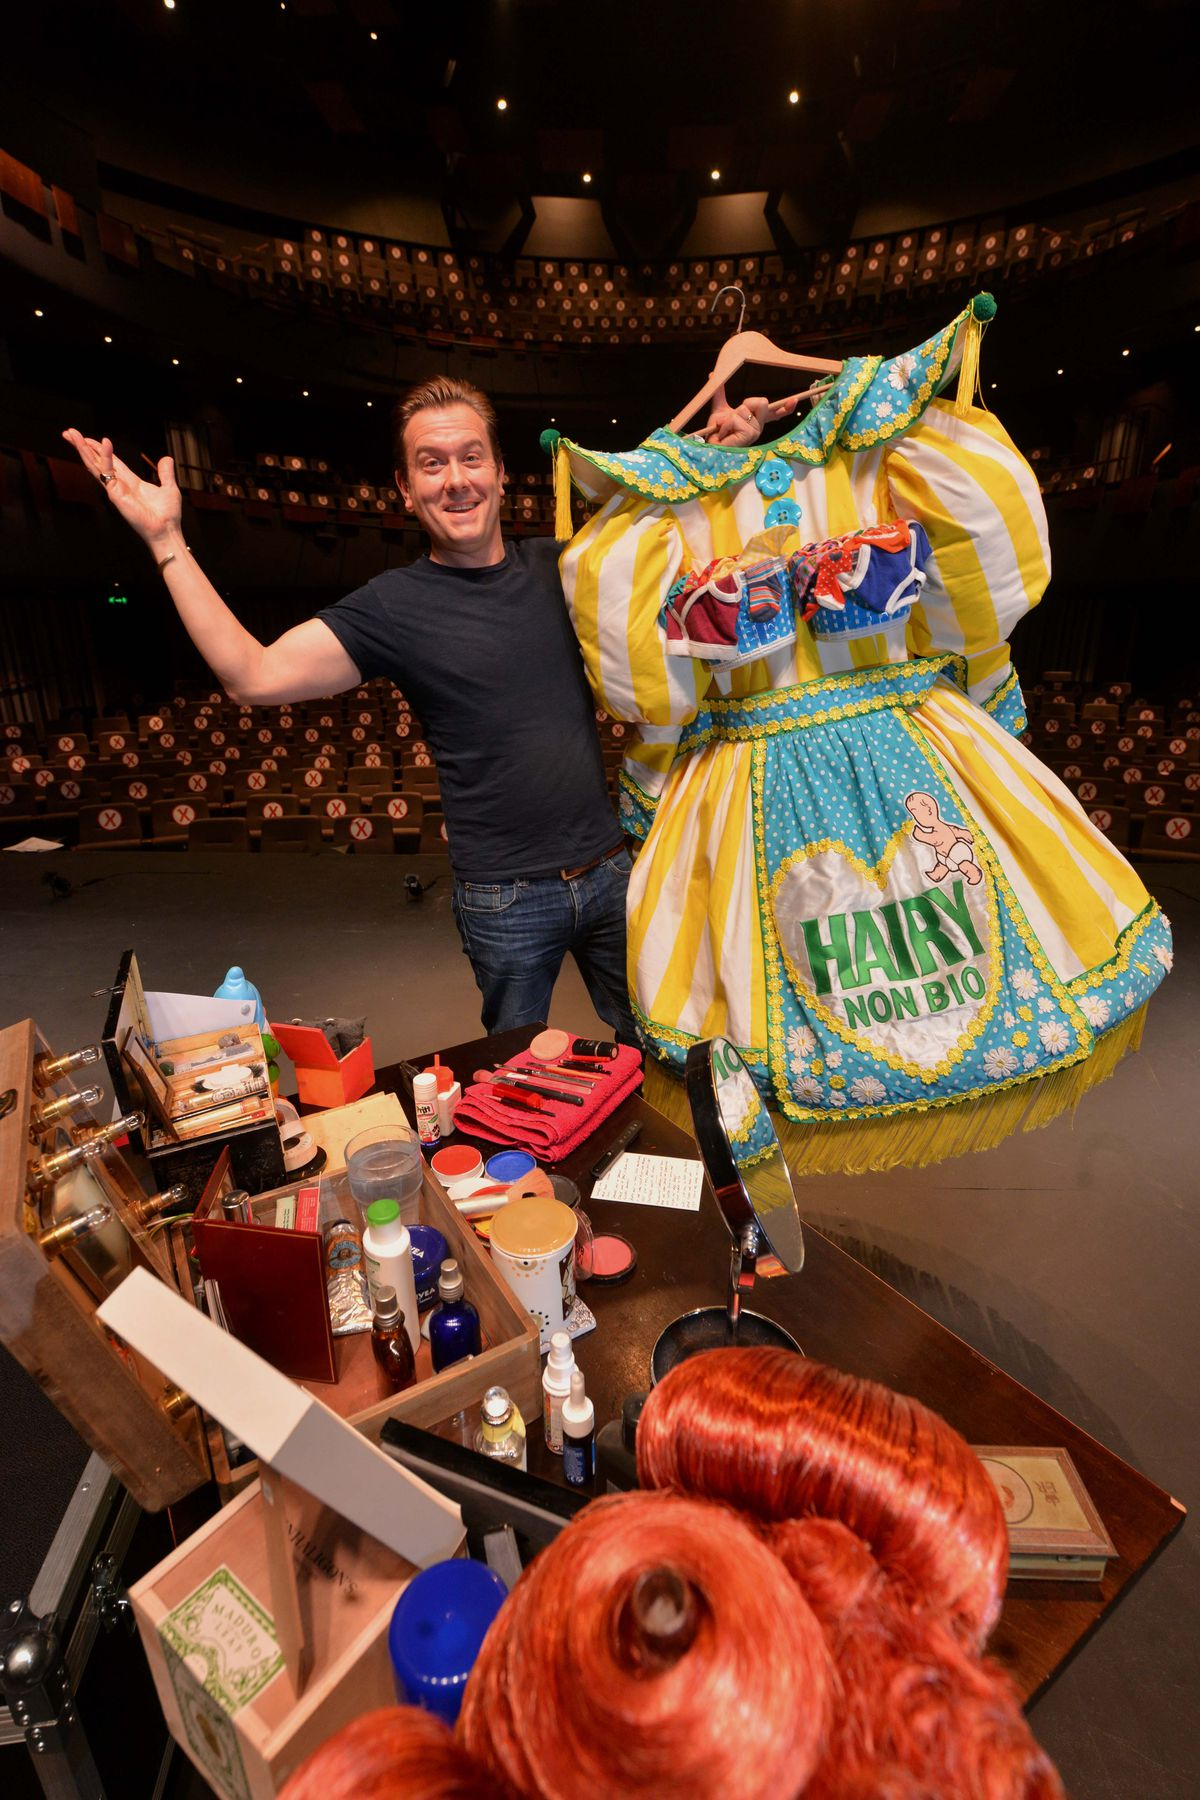 Panto dame Brad Fitt did perform a one-man show at Shrewsbury's Theatre Severn